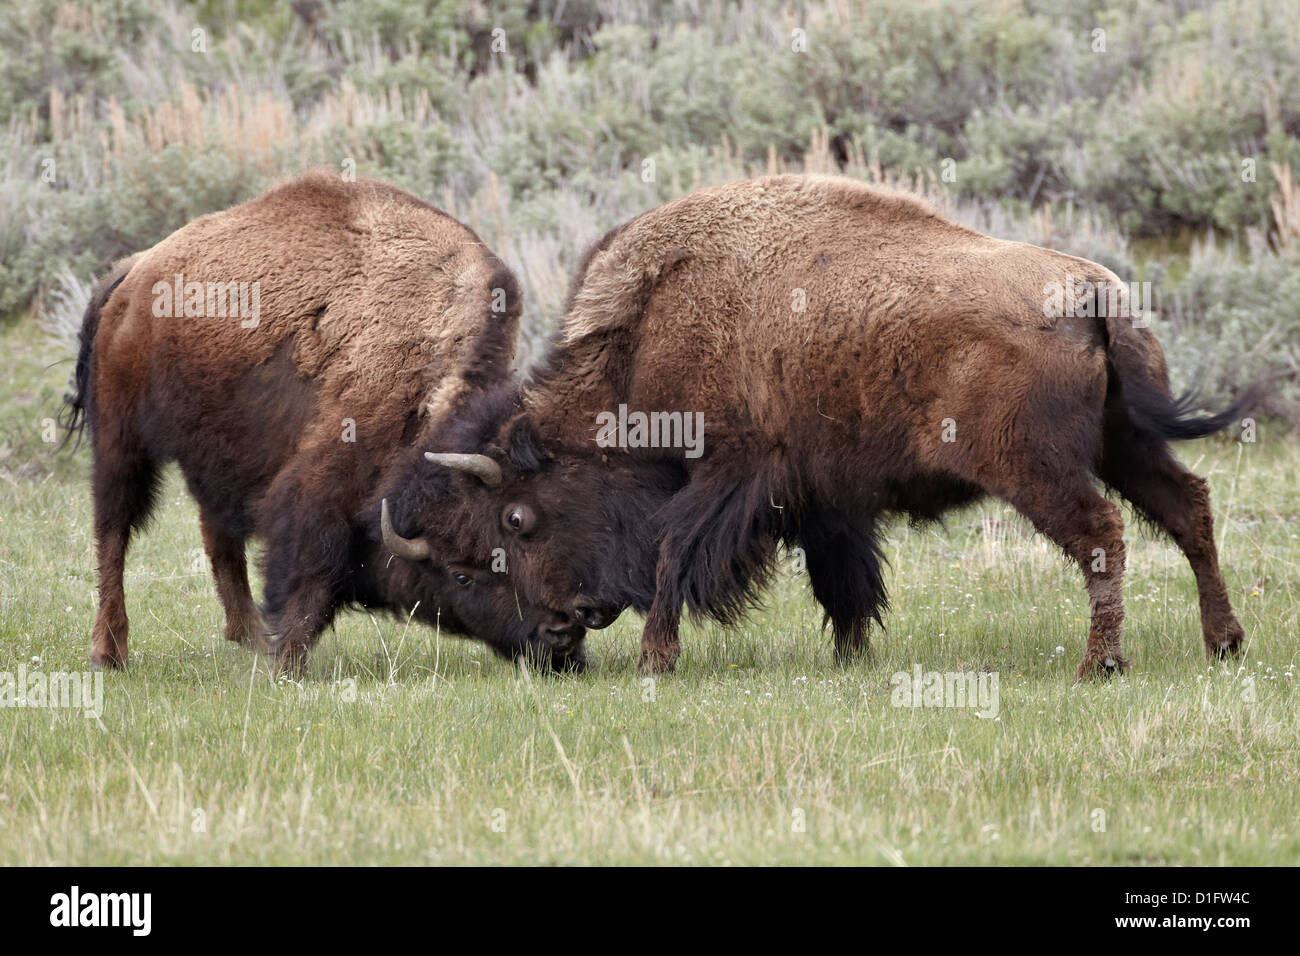 Bison (Bison bison) cows sparring, Yellowstone National Park, Wyoming, United States of America, North America - Stock Image